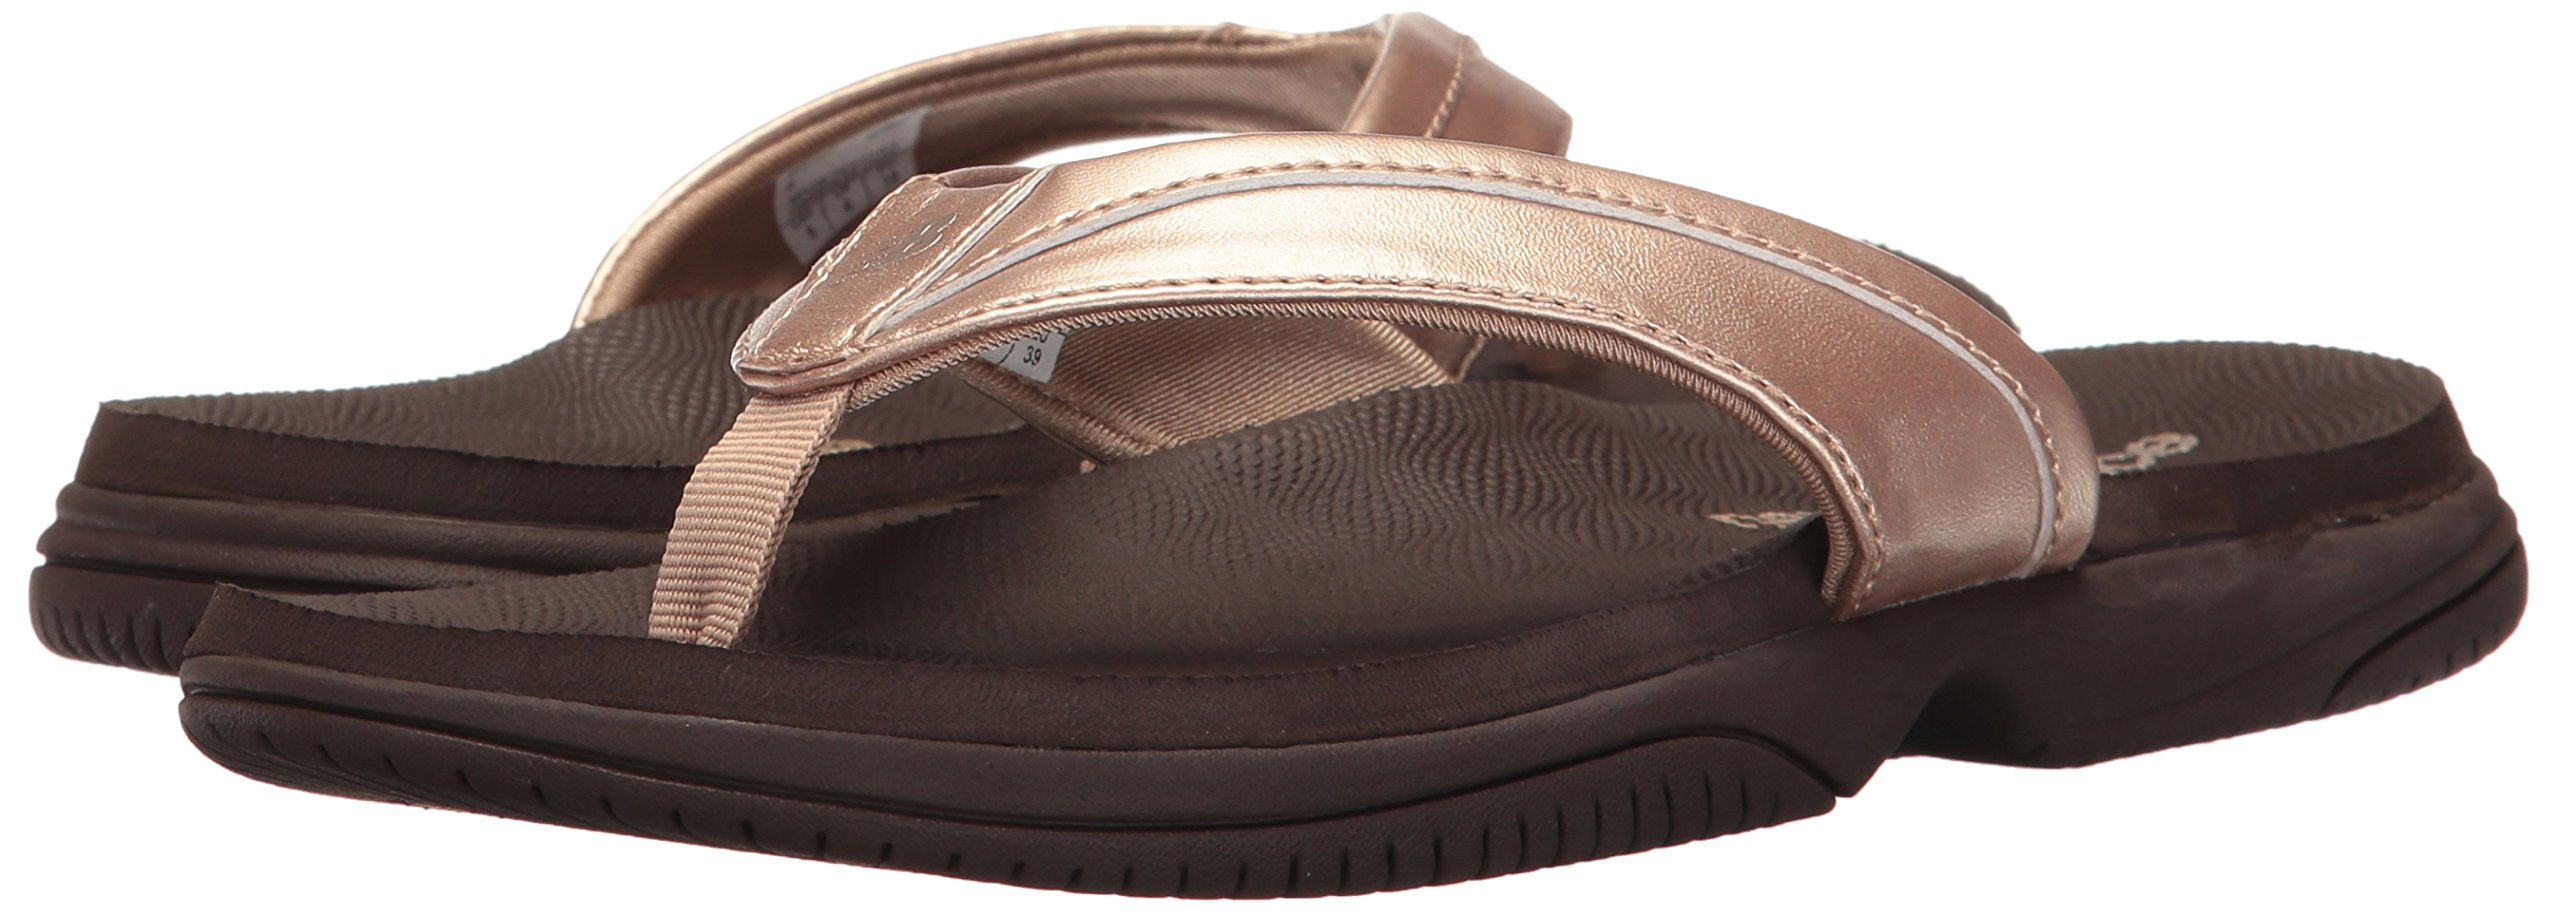 a2e6ea35ced New Balance Womens JoJo Thong Sandal Rose Gold 6 B US     Click on the  image for additional details. (This is an affiliate link and I receive a  commission ...